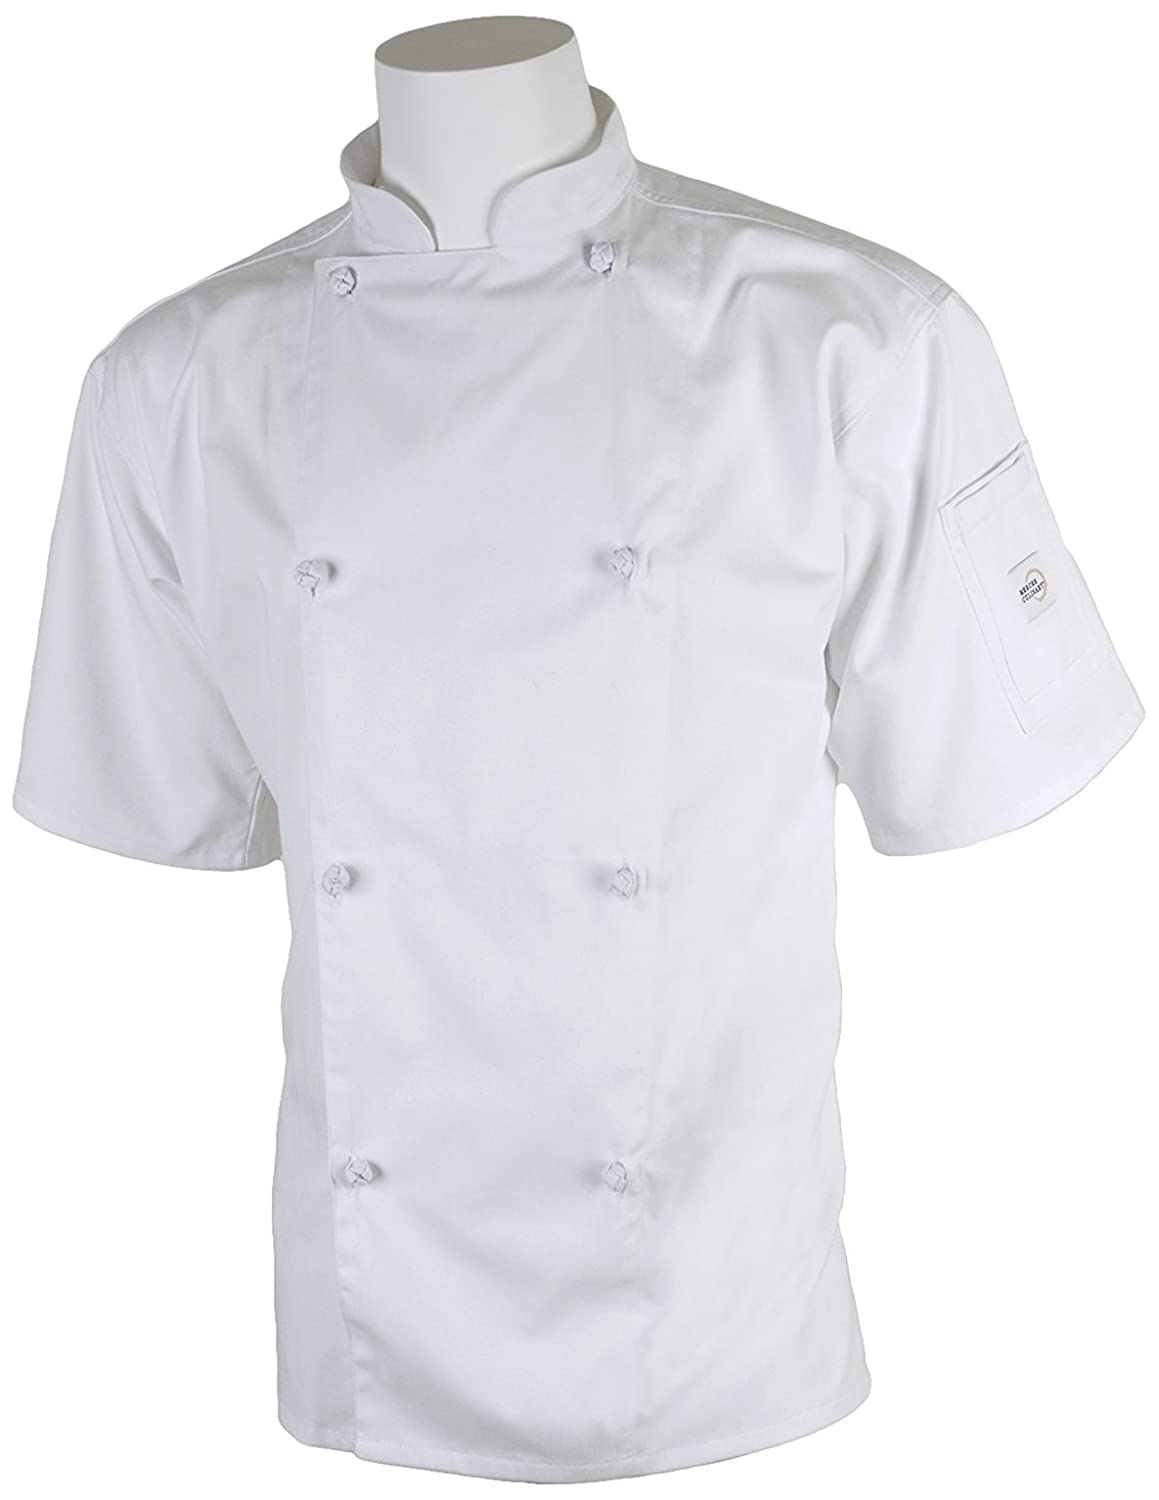 Mercer Culinary M61022WH1X Genesis Unisex Short Sleeve Chef Jacket with Cloth Knot Buttons, X-Large, White